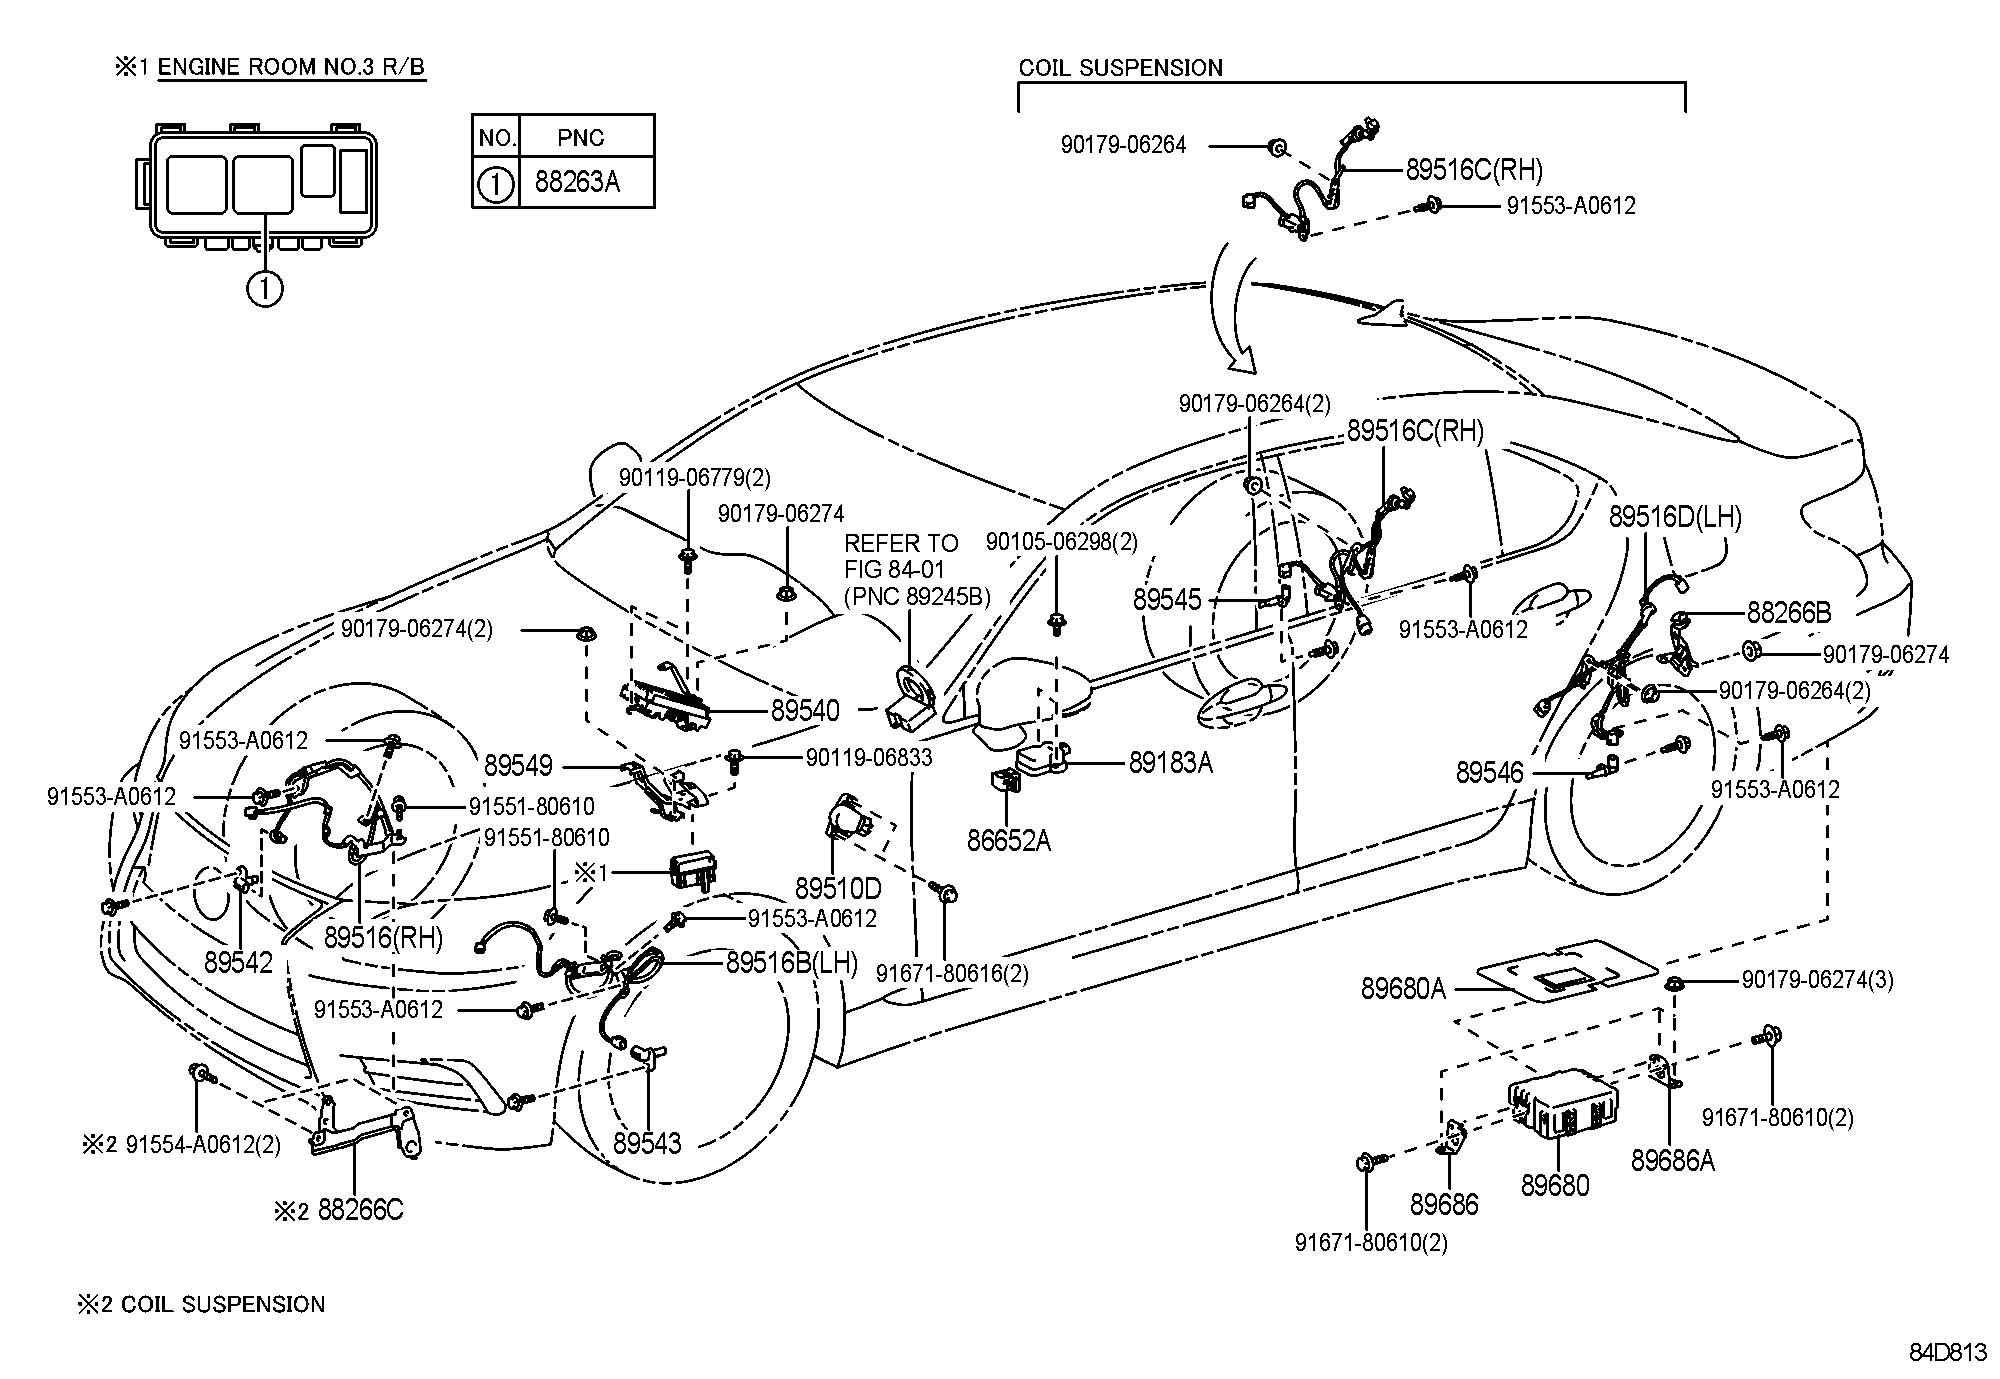 [DIAGRAM] 1999 Lexus Lx470 Parts Diagram Wiring Schematic